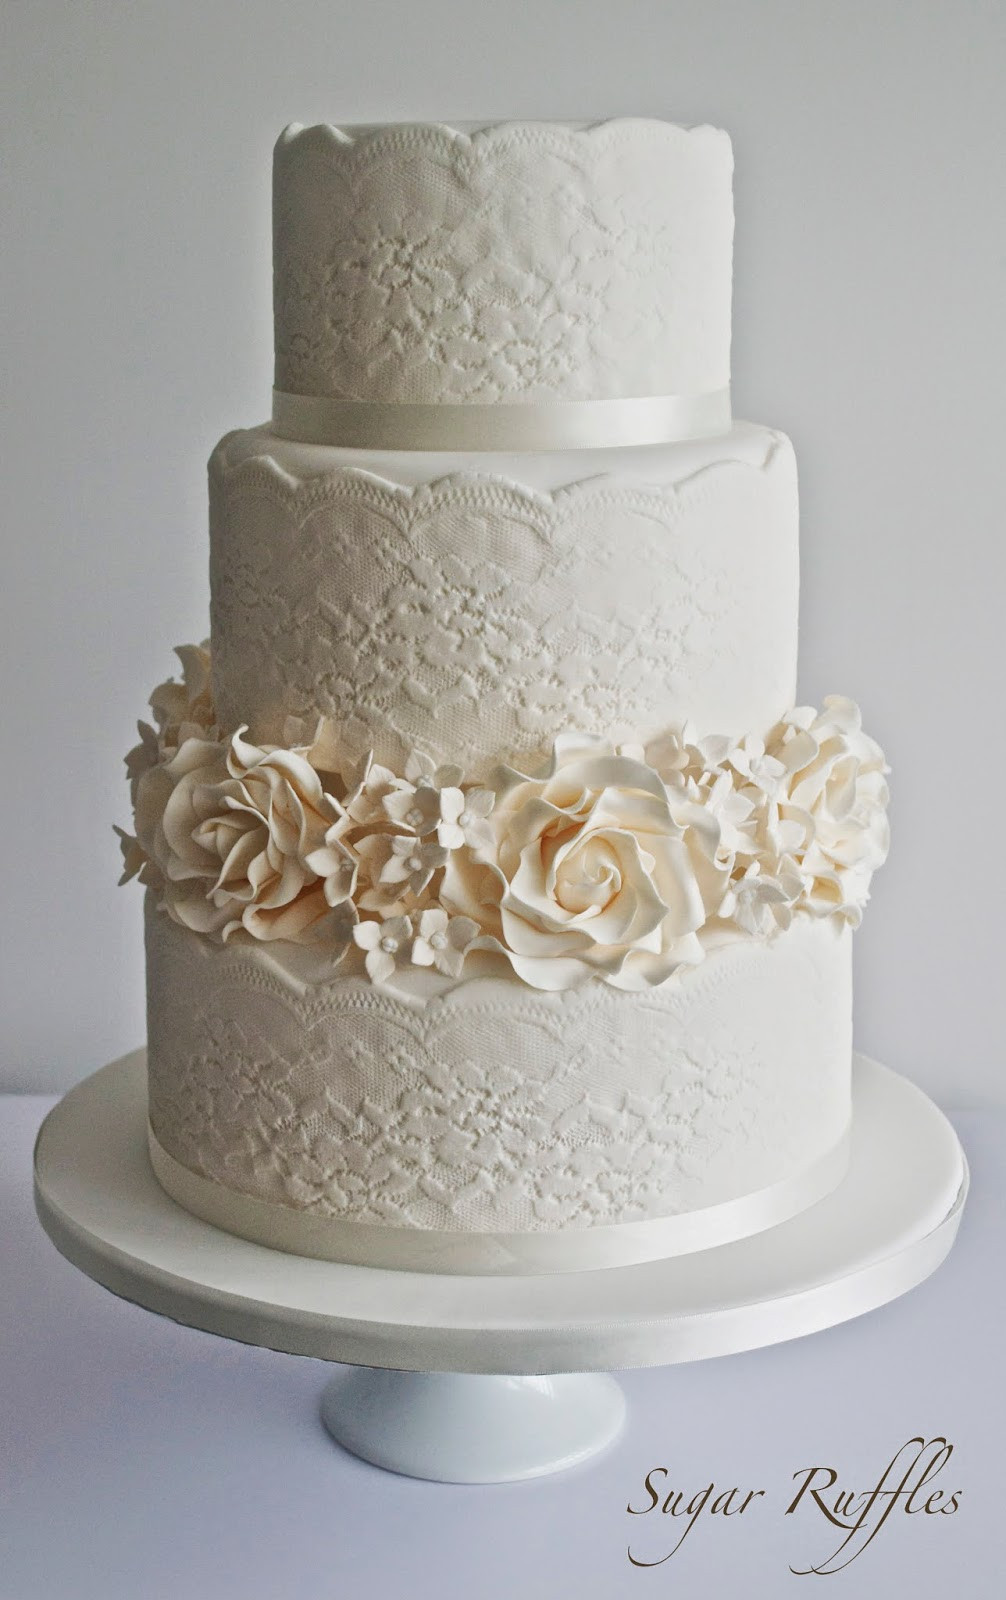 Sugar Free Wedding Cakes  Sugar lace for wedding cakes idea in 2017